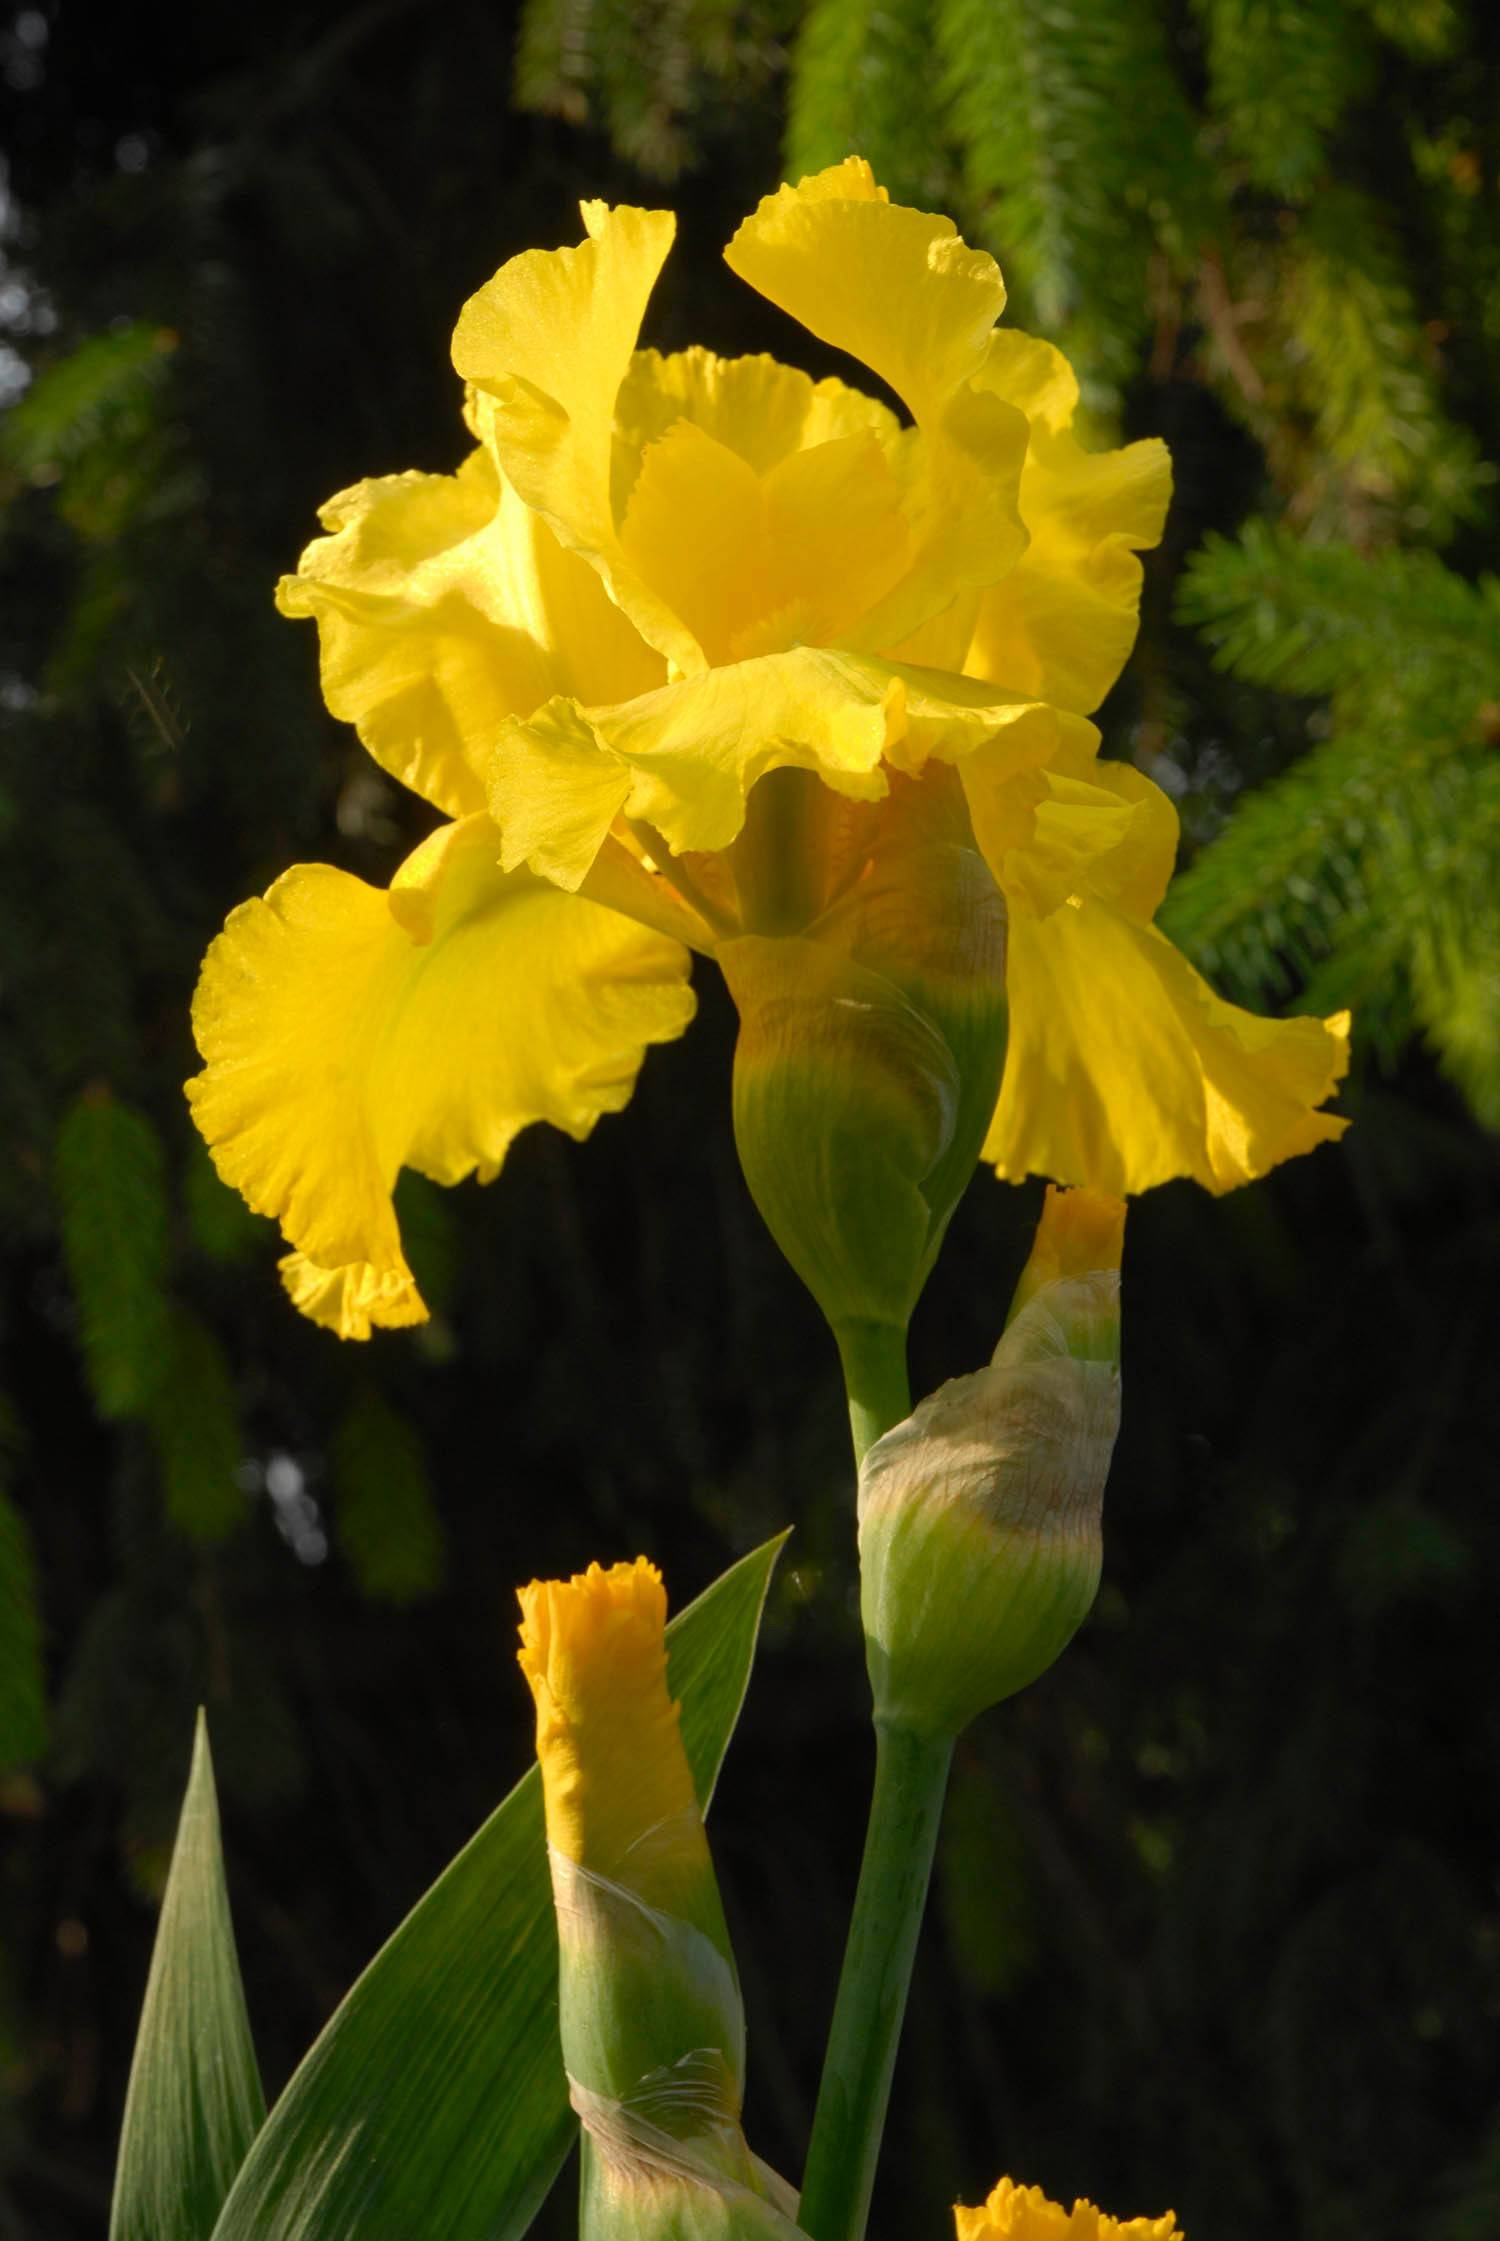 Once they finish blooming, bearded iris can be divided and replanted.